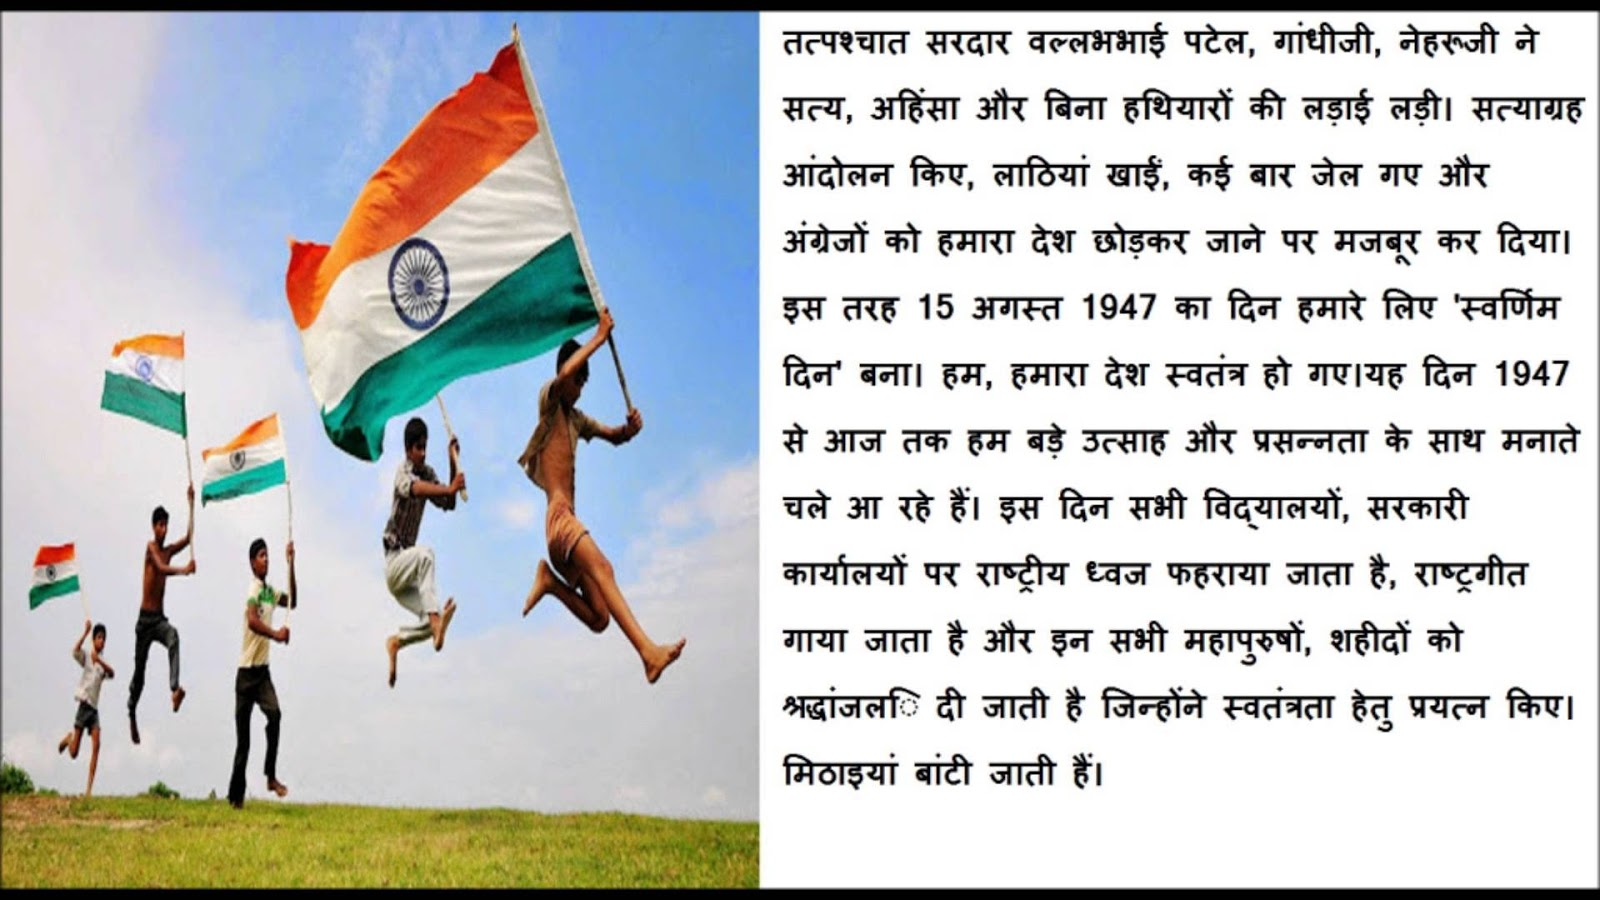 hindi speech for independence day Indian independence day speech hindi for students | 70th independence day 2016 independence day essay in hindi republic day speech for school children.